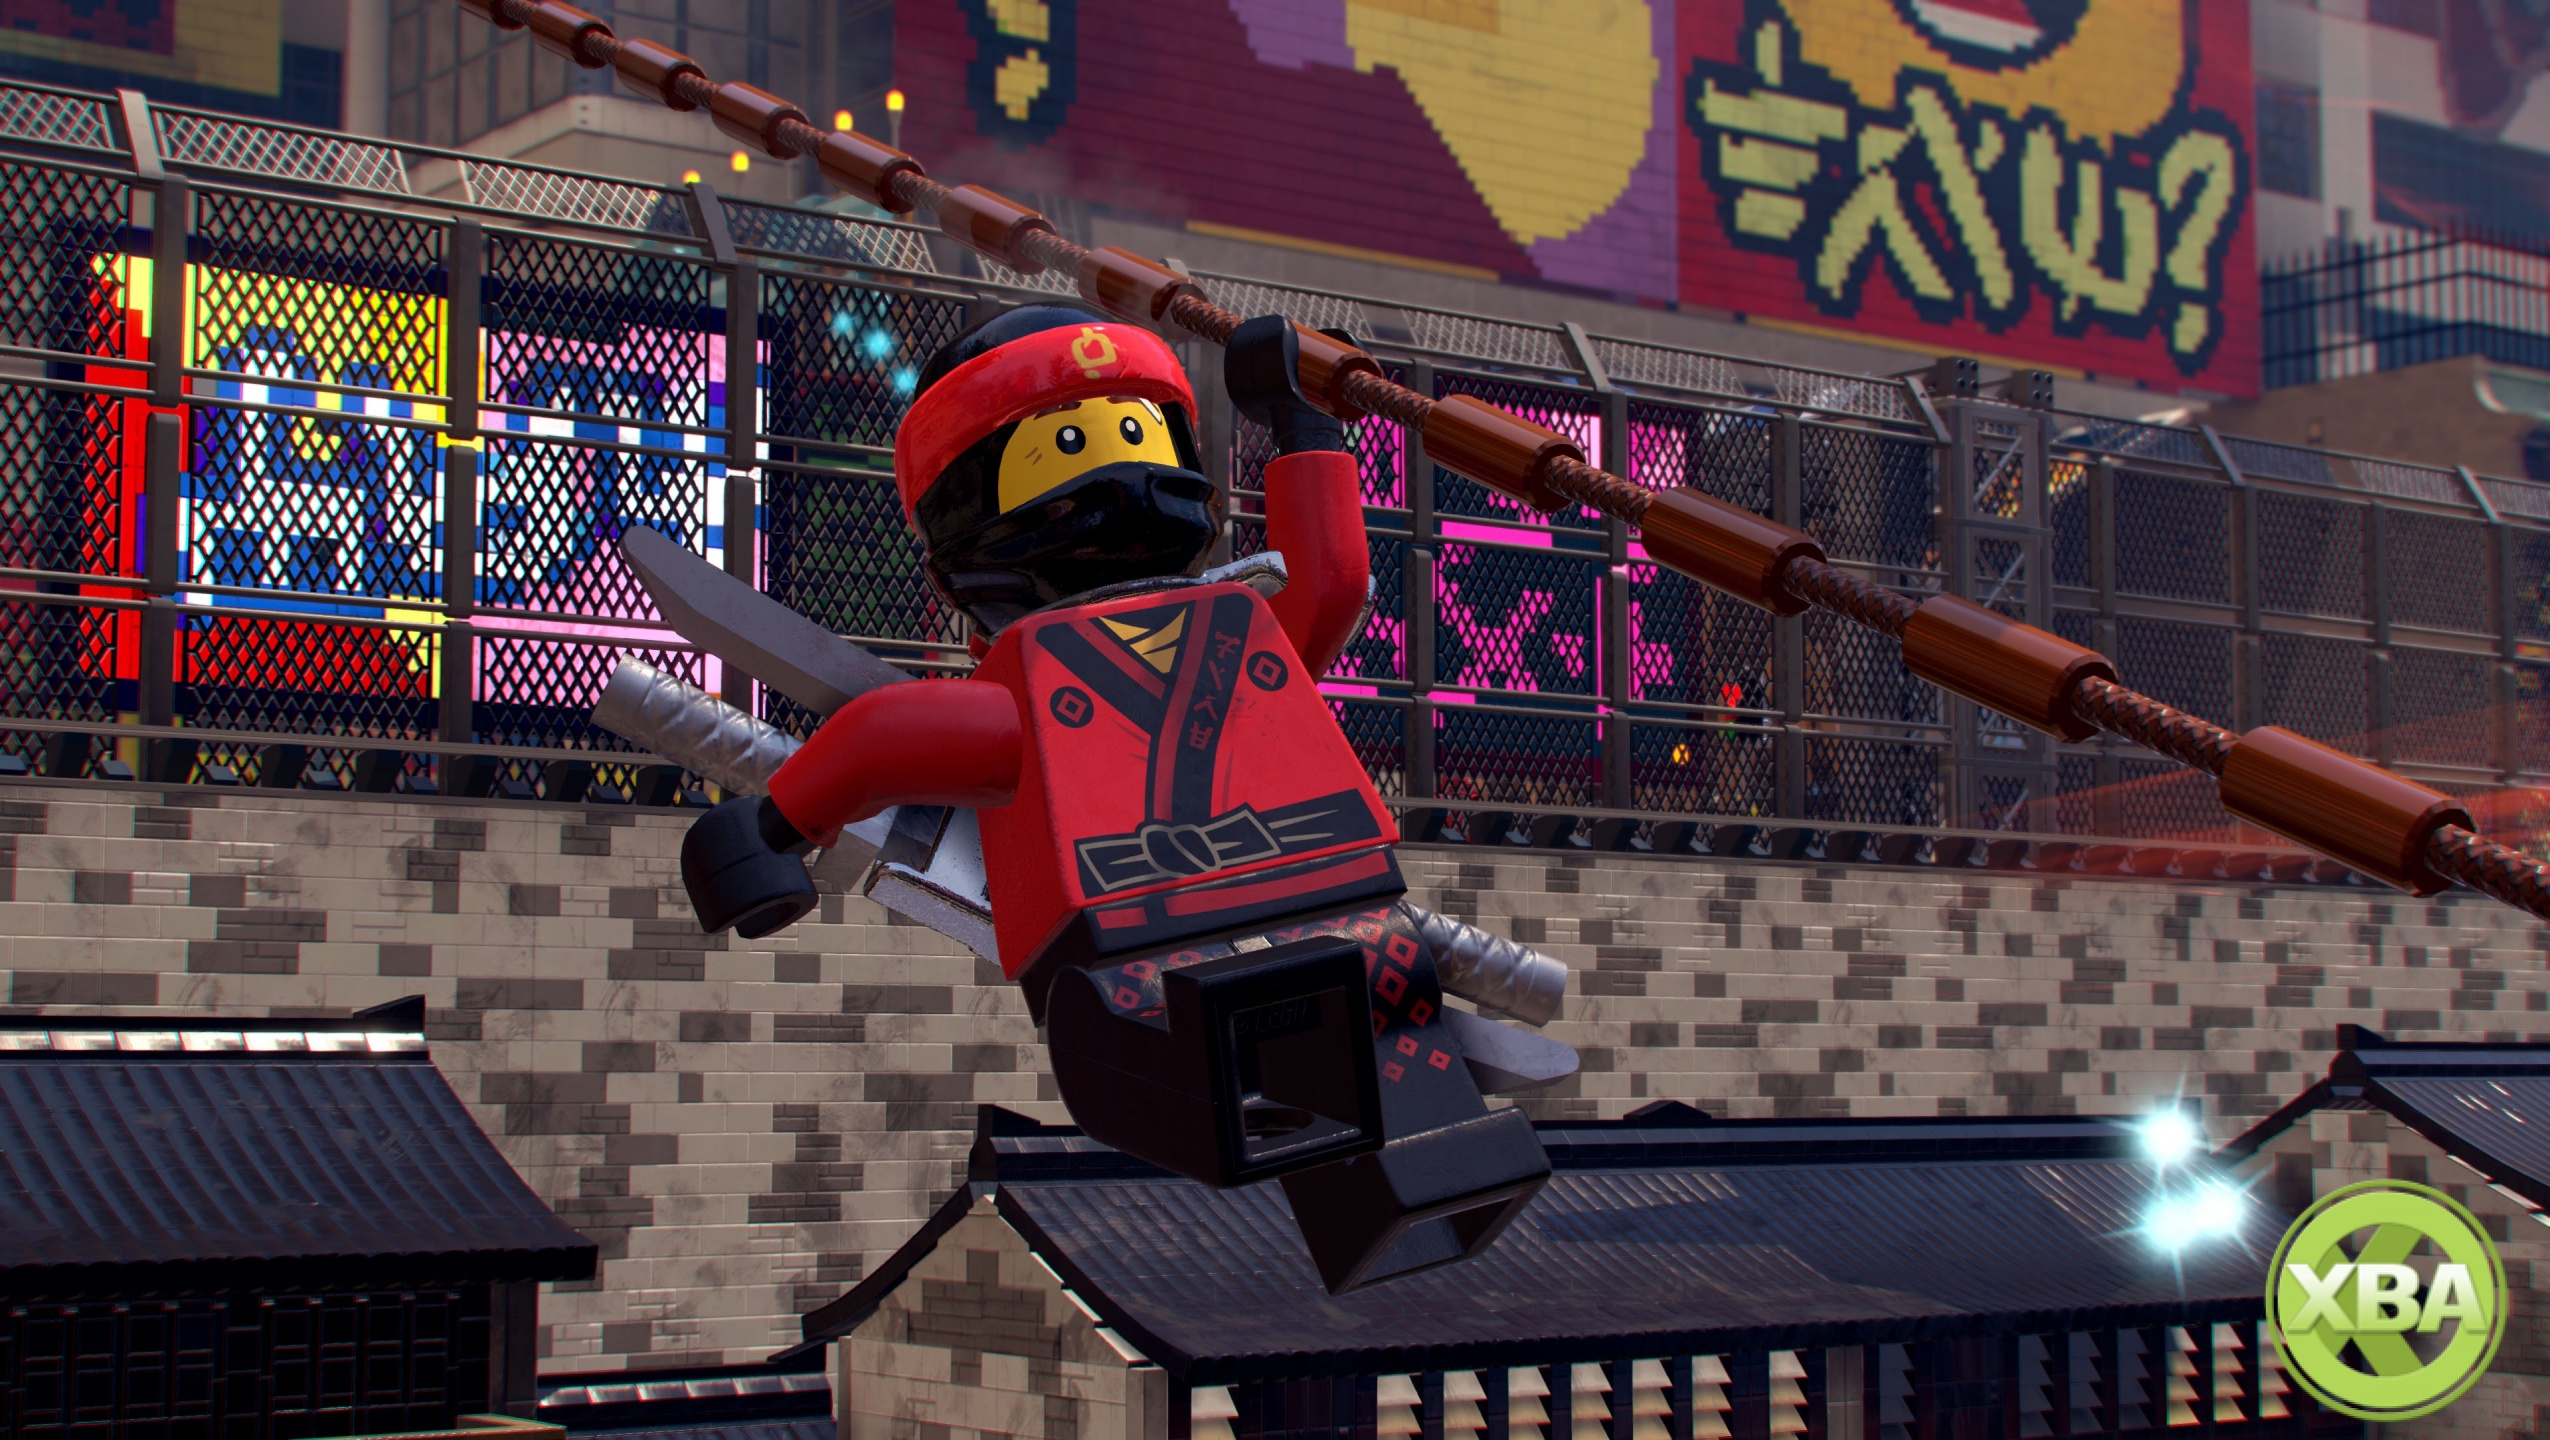 The Lego Ninjago Movie Video Game Is Free On Xbox One Today Xbox One Xbox 360 News At Xboxachievements Com